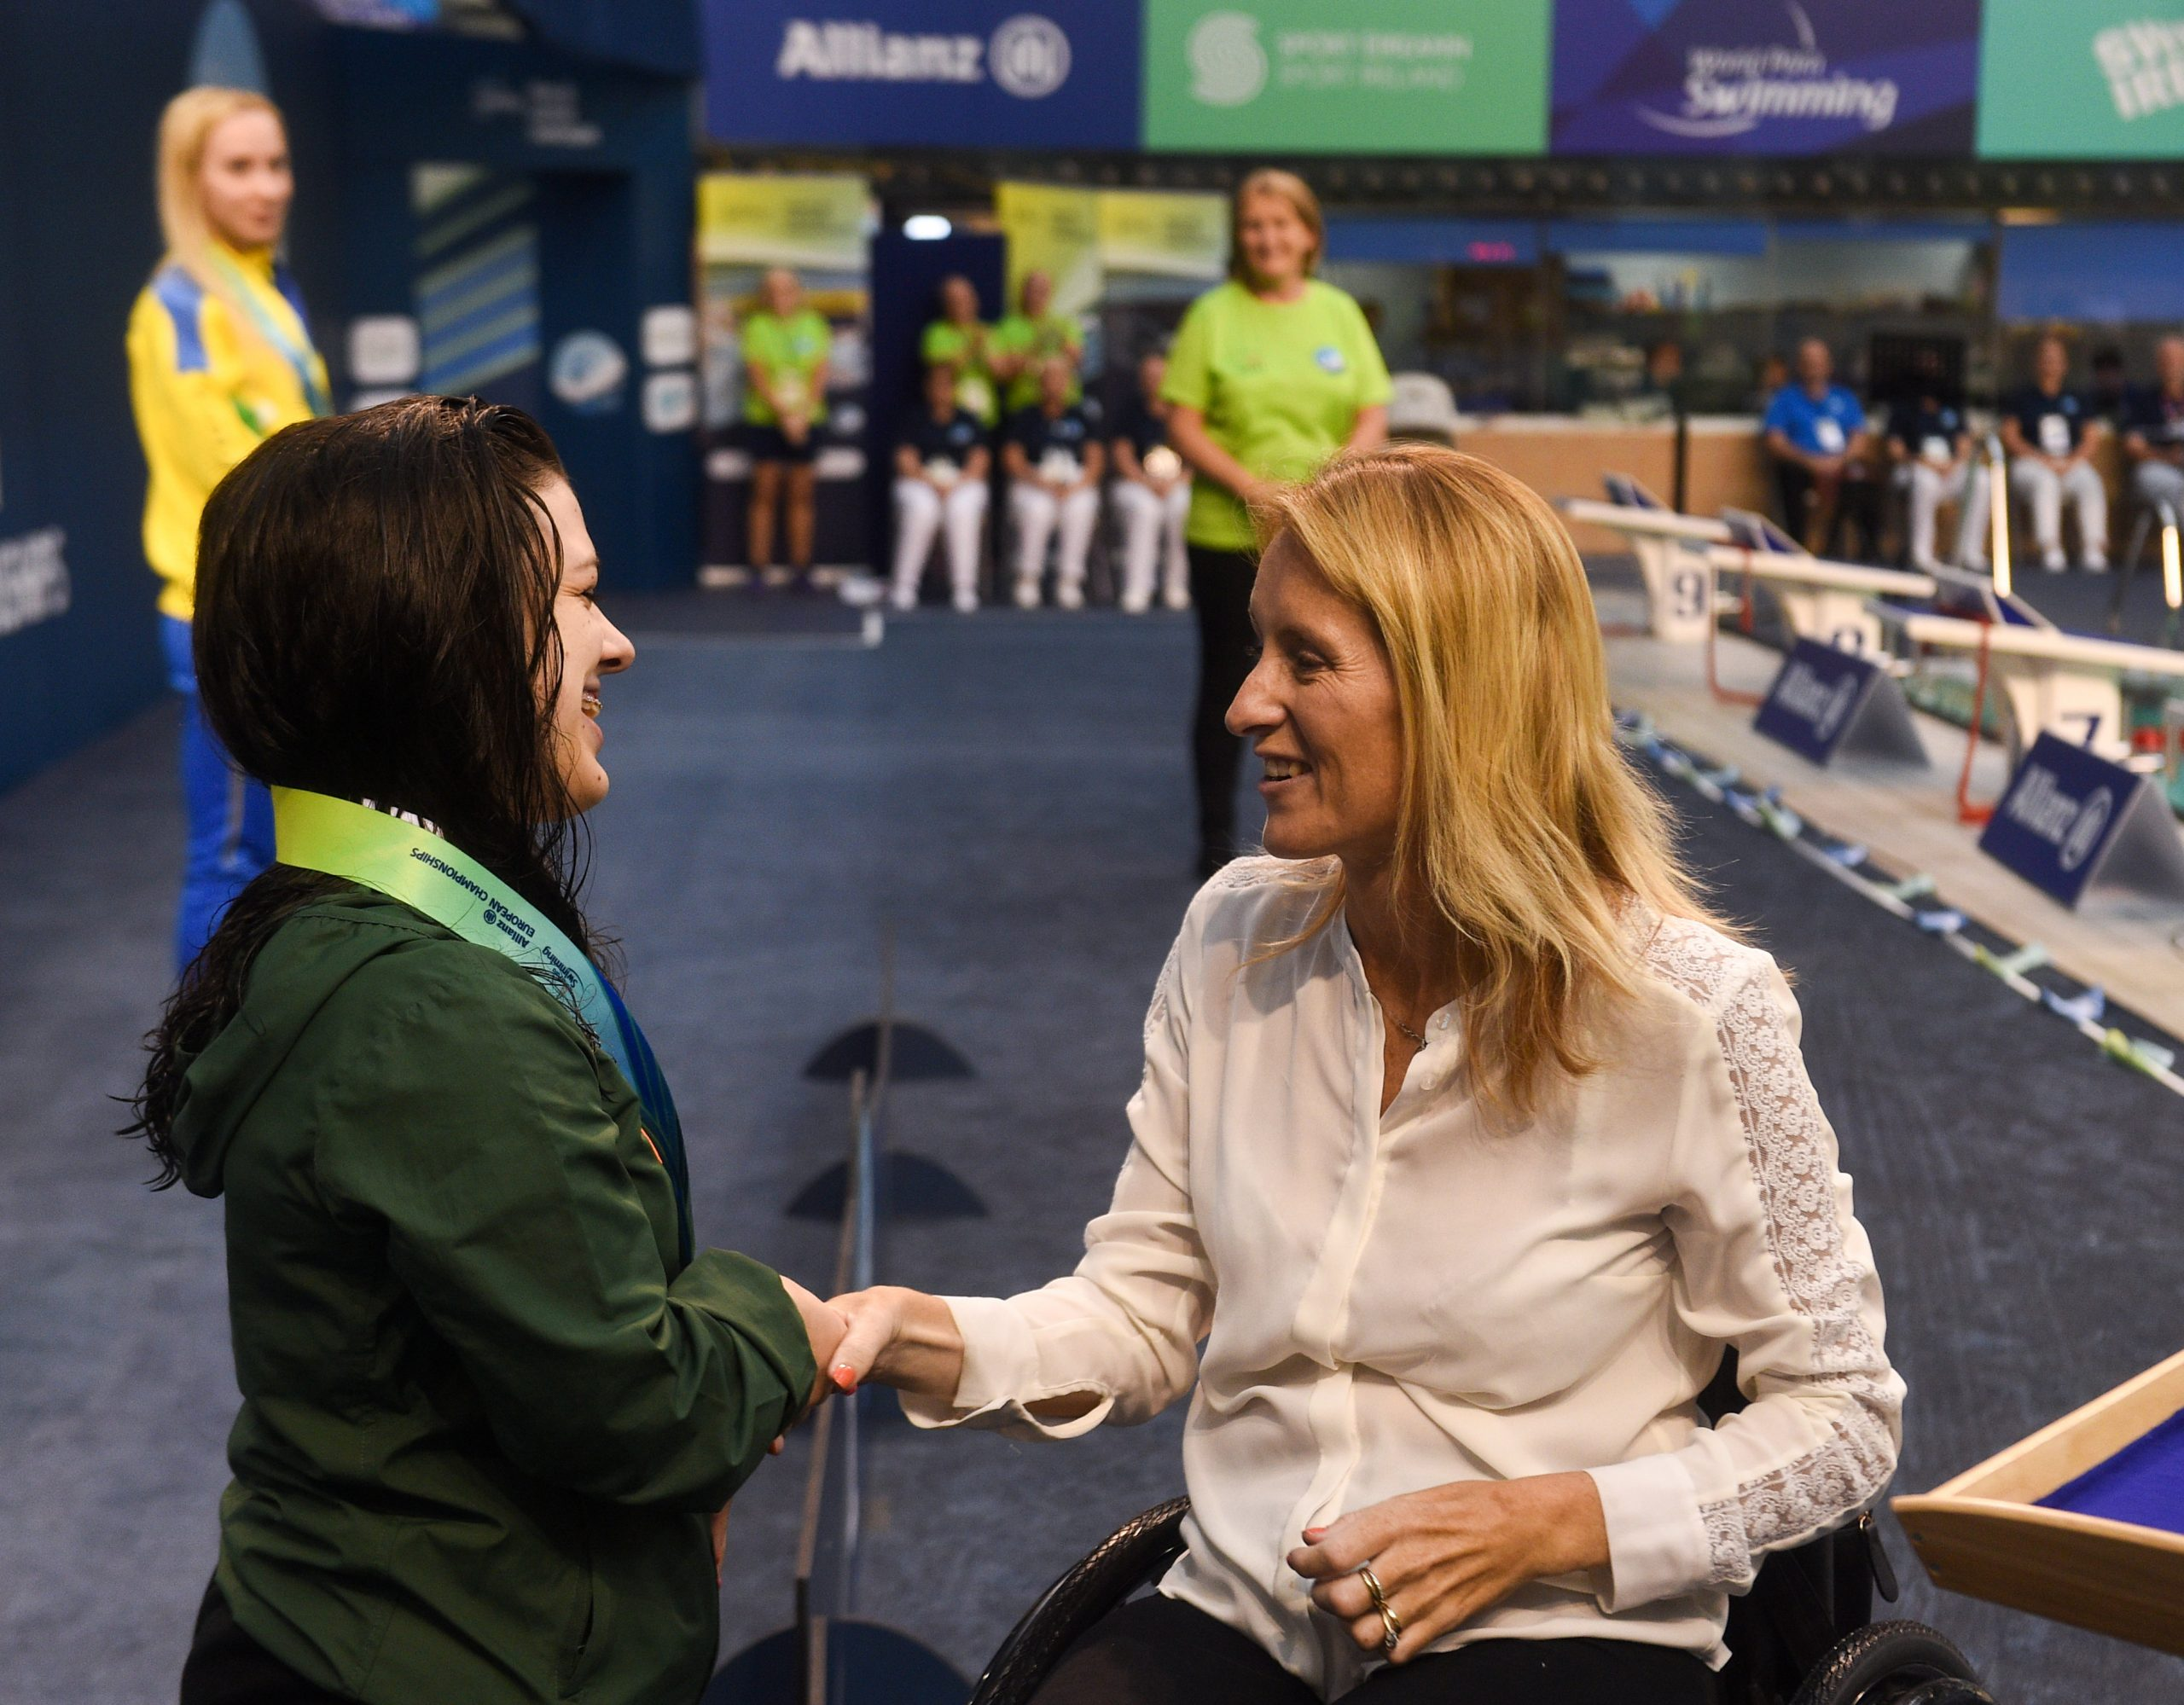 18 August 2018; Nicole Turner of Ireland is presented with her silver medal by Eimear Breathnach after finishing in second place in the final of the Women's 50m Butterfly S6 event during day six of the World Para Swimming Allianz European Championships at the Sport Ireland National Aquatic Centre in Blanchardstown, Dublin. Photo by David Fitzgerald/Sportsfile ***NO REPRODUCTION FEE***